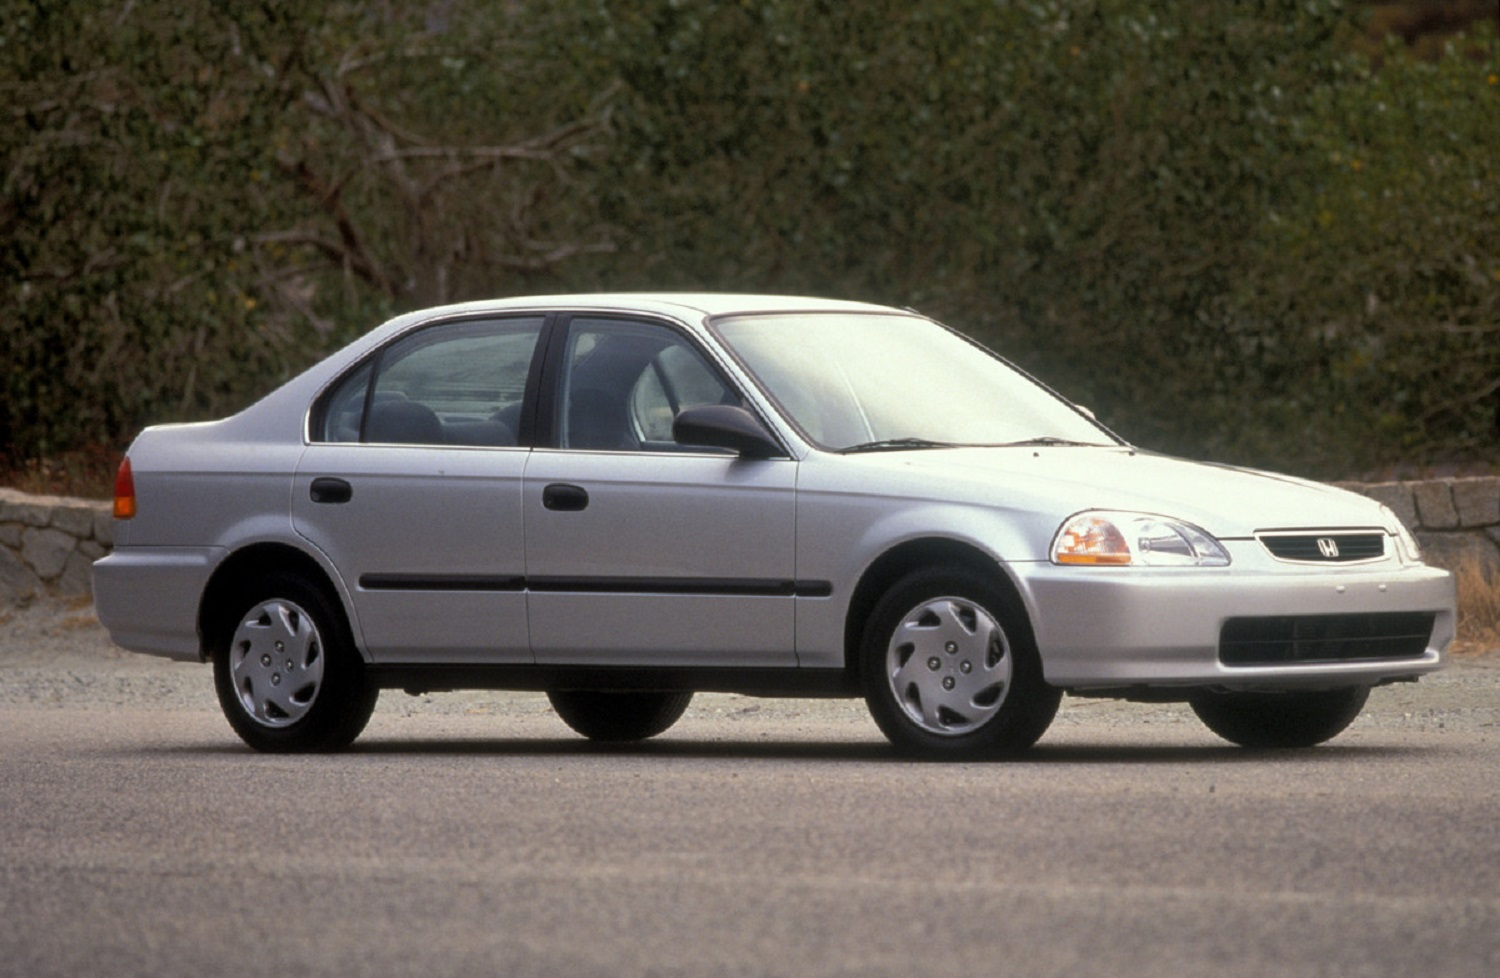 2000 Honda Civic most stolen cars